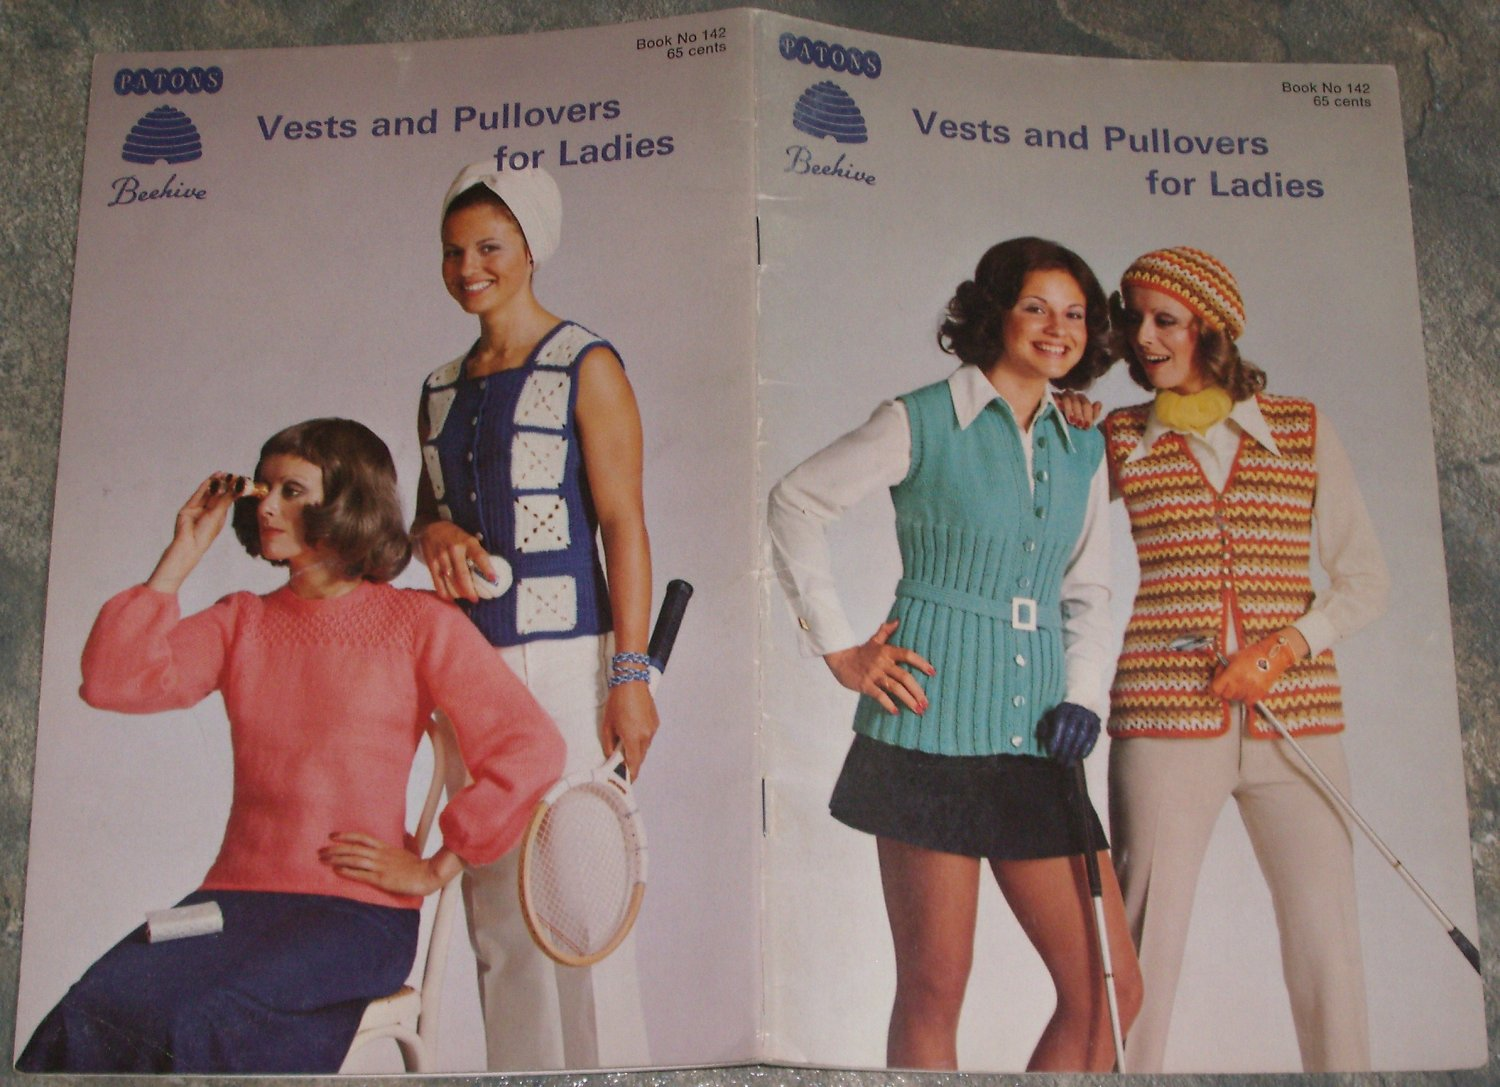 Patons Beehive Knit/Crochet Pattern Book No. 142 Vests and Pullovers for Ladies